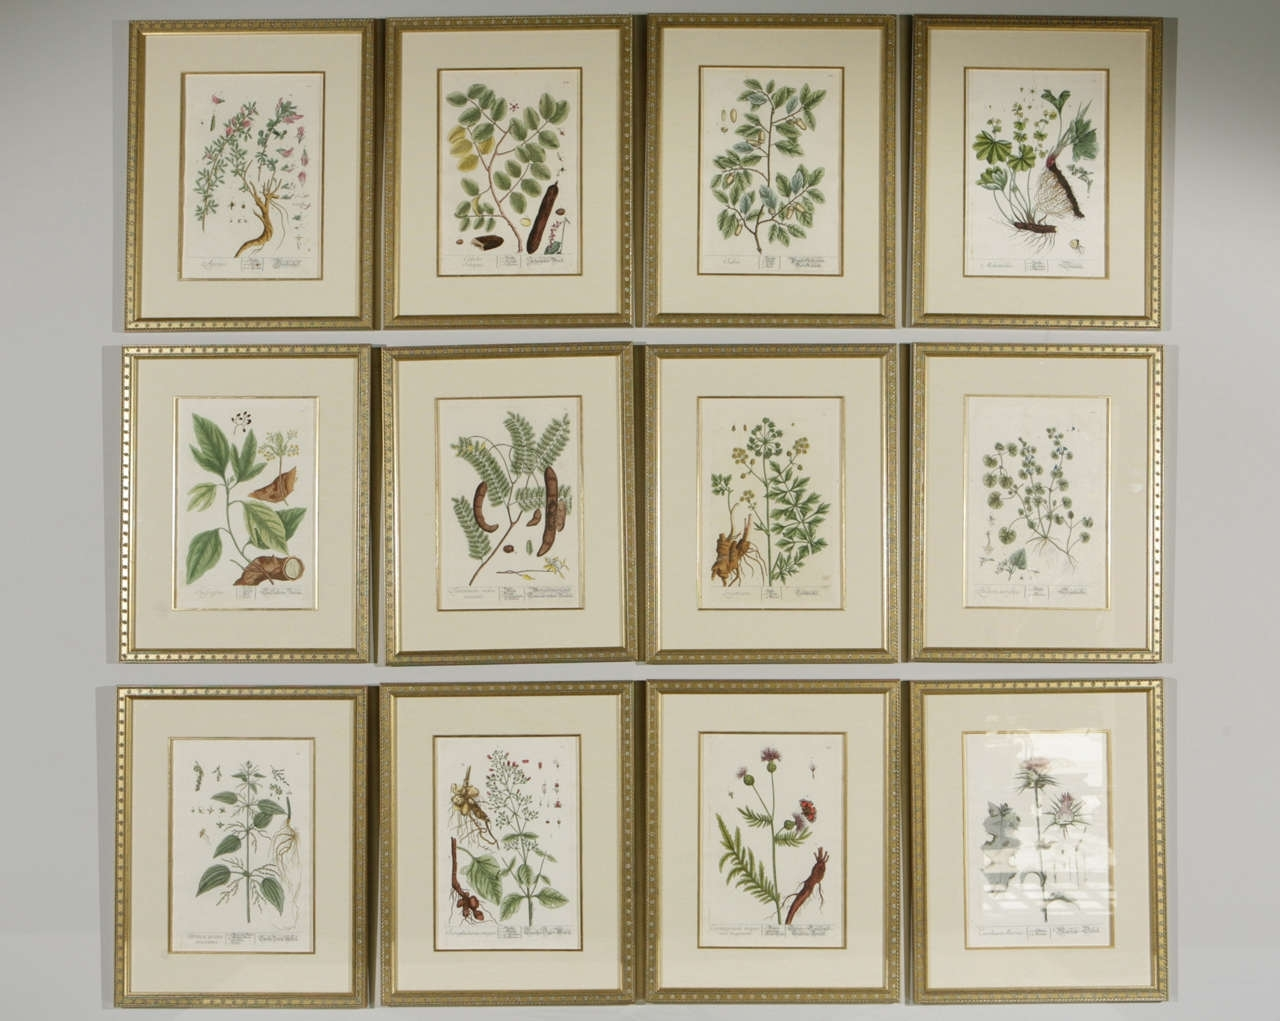 Fresh Framed Botanical Prints | Indoor & Outdoor Decor For Most Current Framed Botanical Art Prints (View 2 of 15)